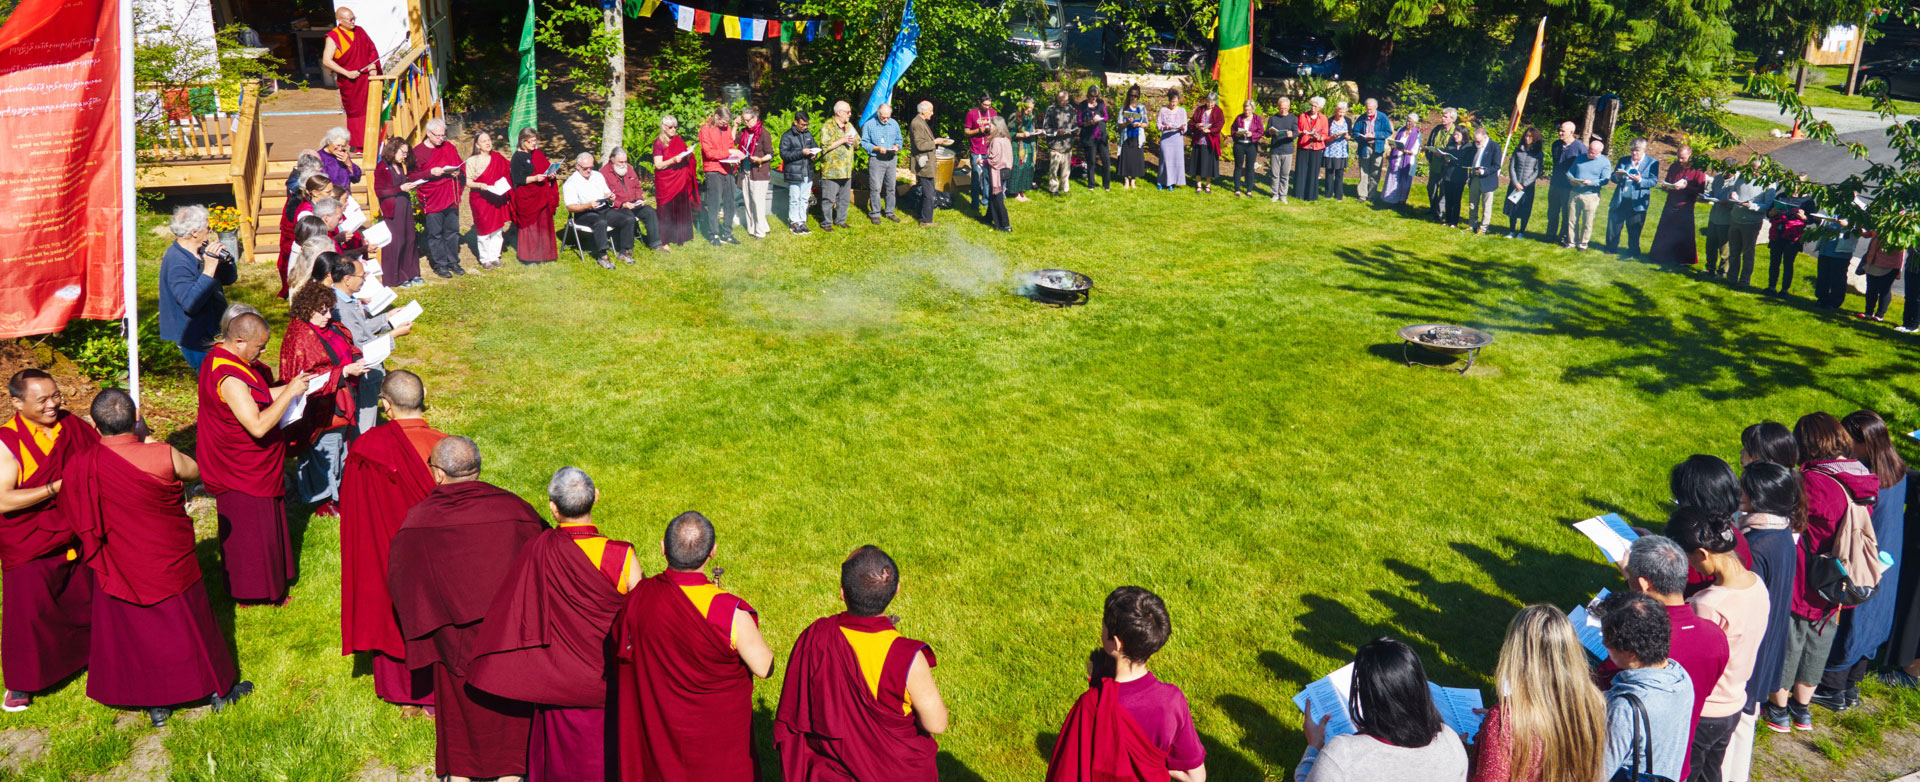 In late May people came from around the world to consecrate the new Phagtsok Gendun Choling Temple on Whidbey Island, the culmination of years of leadership and teaching by Tibetan Buddhist lama Kilung Rinpoche